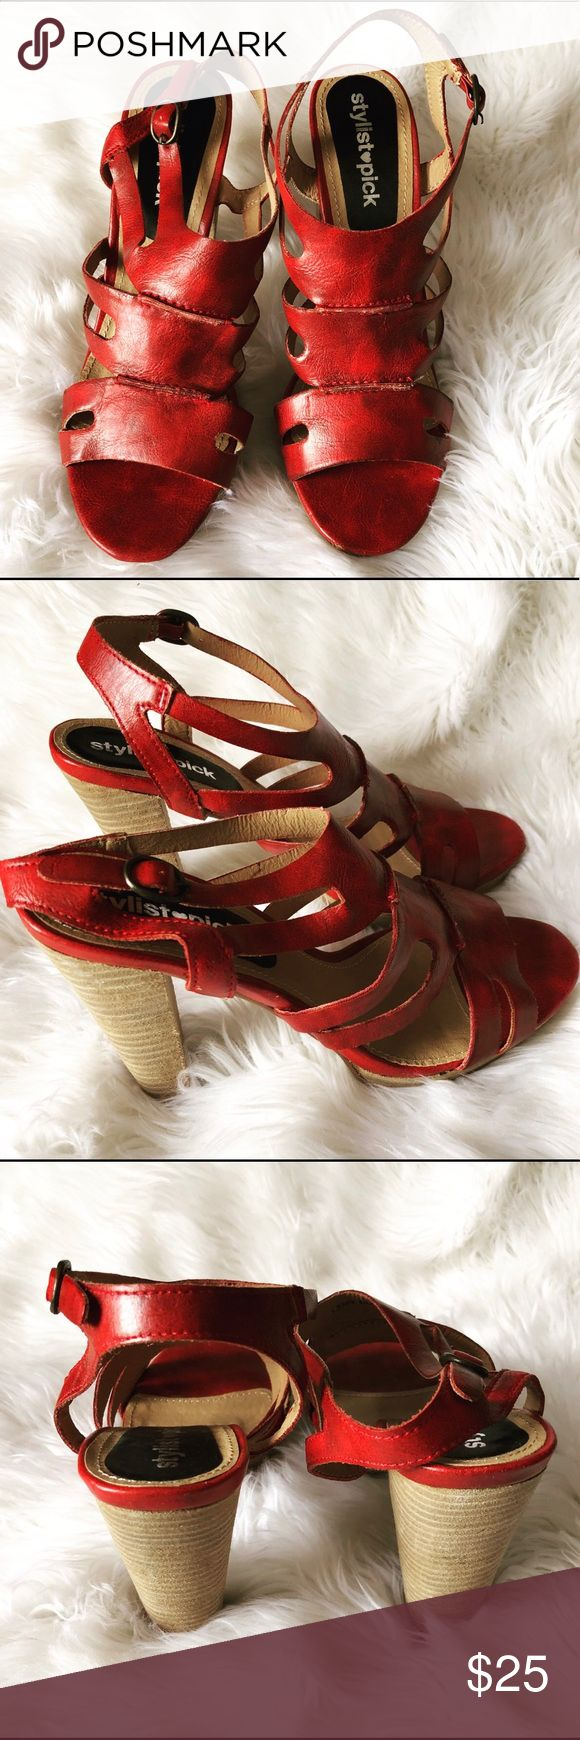 Red color gladiator sandals: size US 8 Red color gladiator sandals with 4.5 inches wooden heels from the Stylist Pick brand in the UK. Shoes are open toed, with straps and a buckle. They are new and in great condition. (NEW)  The shoe box/packaging is damaged and would not ship with shoes. Stylist Pick Shoes Sandals